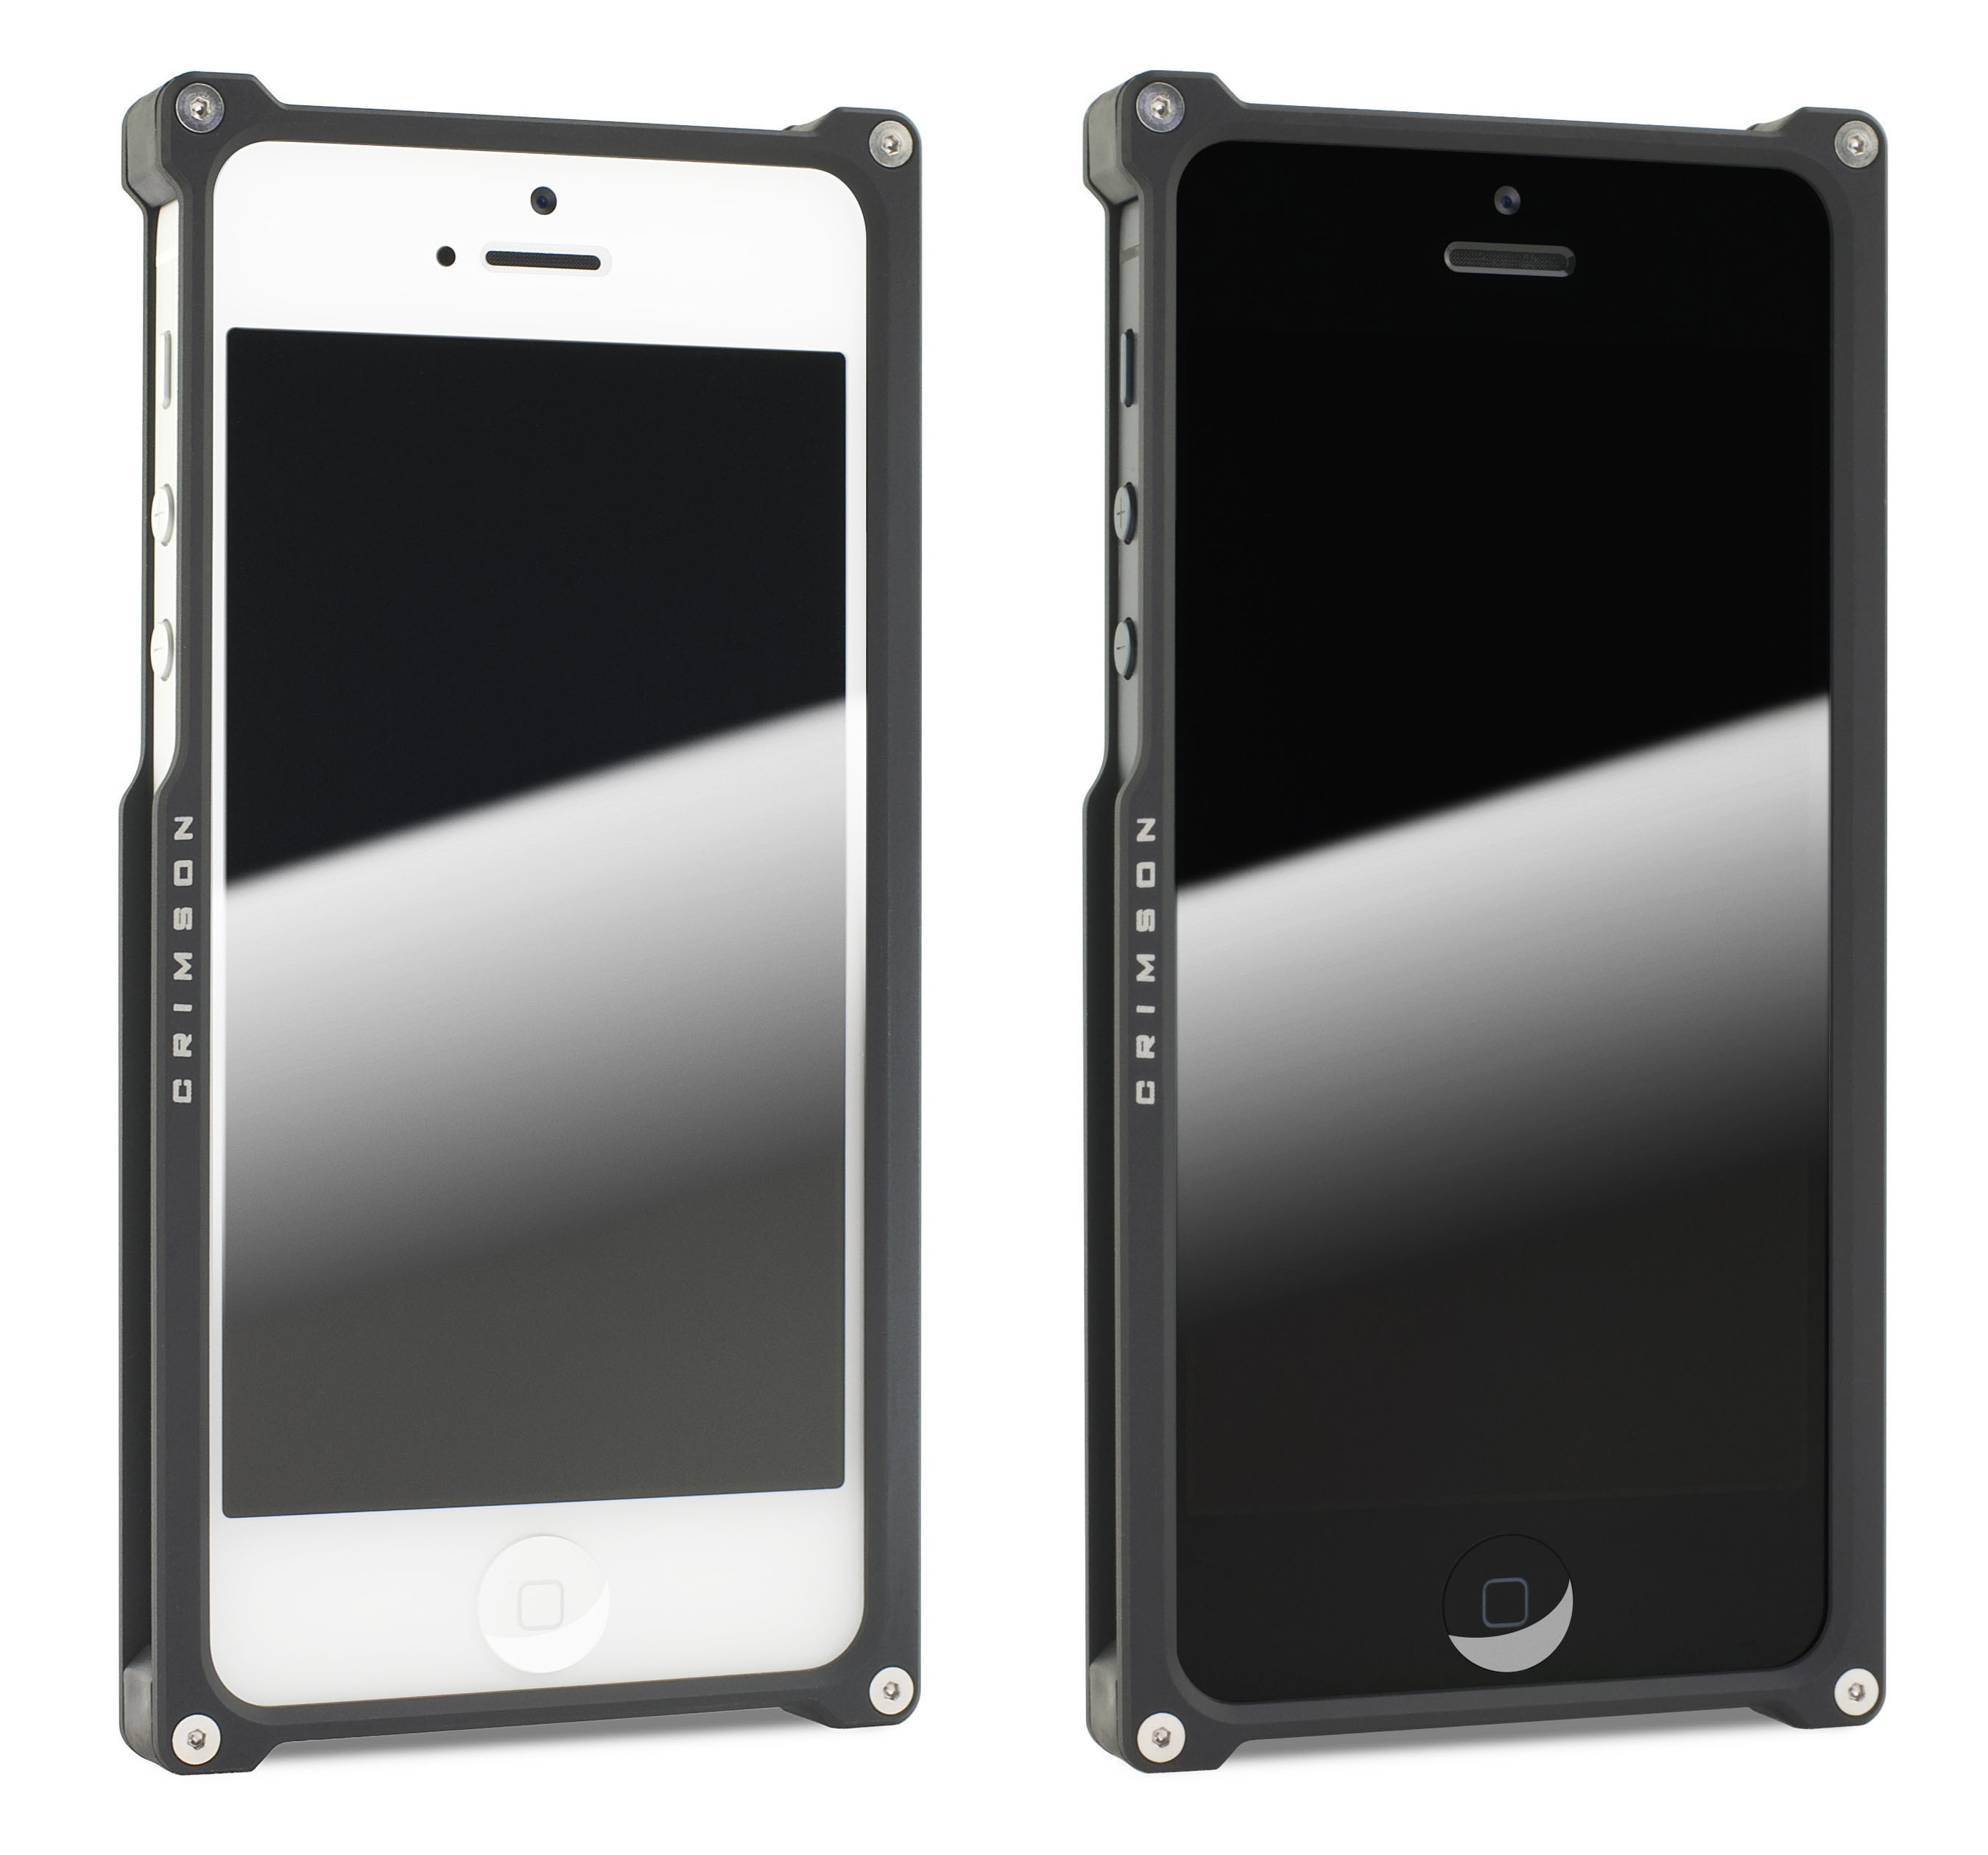 Photo of Crimson Introduces World's Most Advanced Aluminum Frame Case for iPhone 5 with High-Style Design